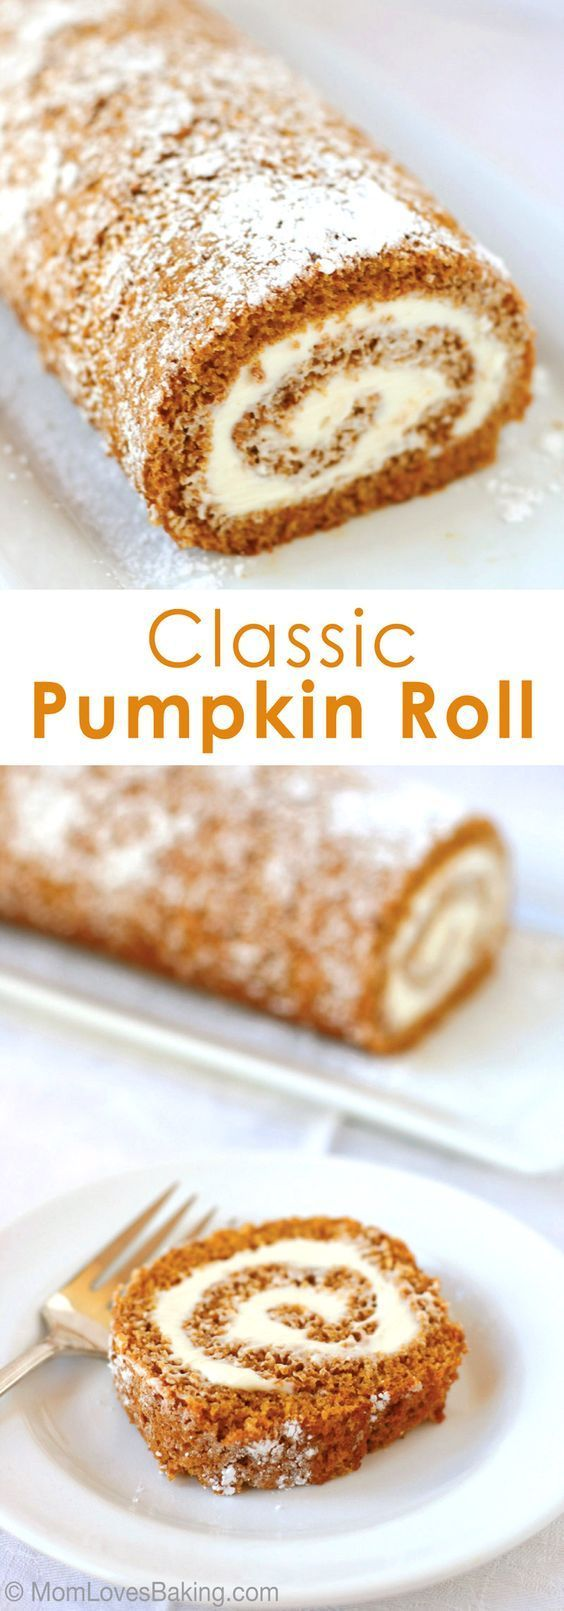 Cinnamon and cloves add the spice to this pumpkin sheet cake, topped with cream cheese frosting and rolled into a festive log.